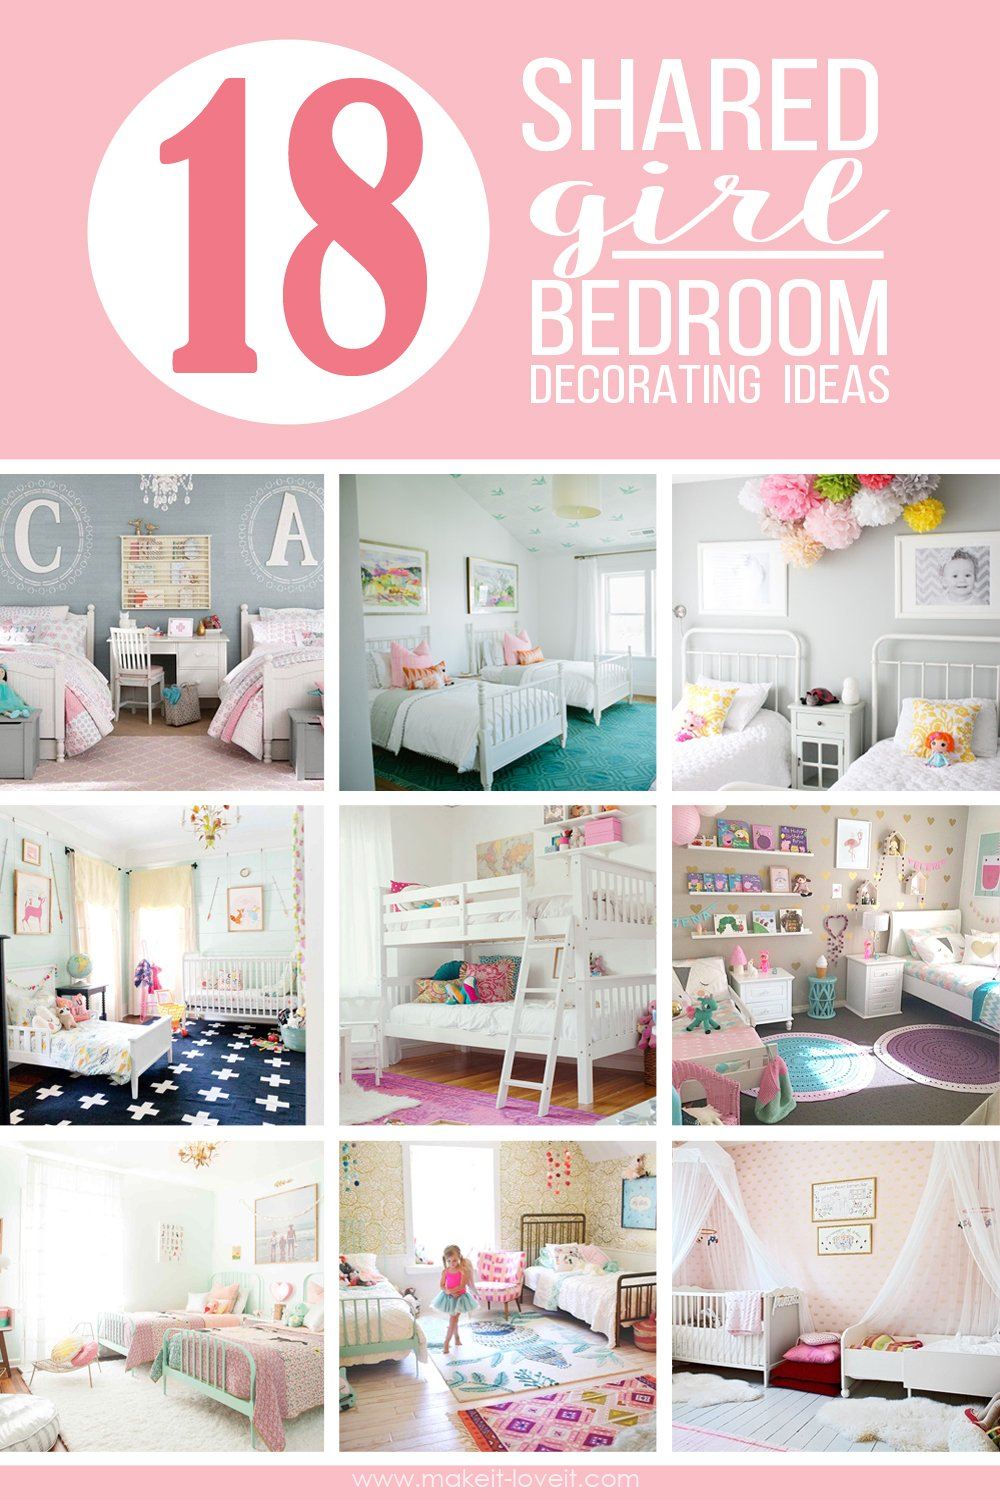 18 shared girl bedroom decorating ideas make it and love it - How to decorate your bedroom for girls ...